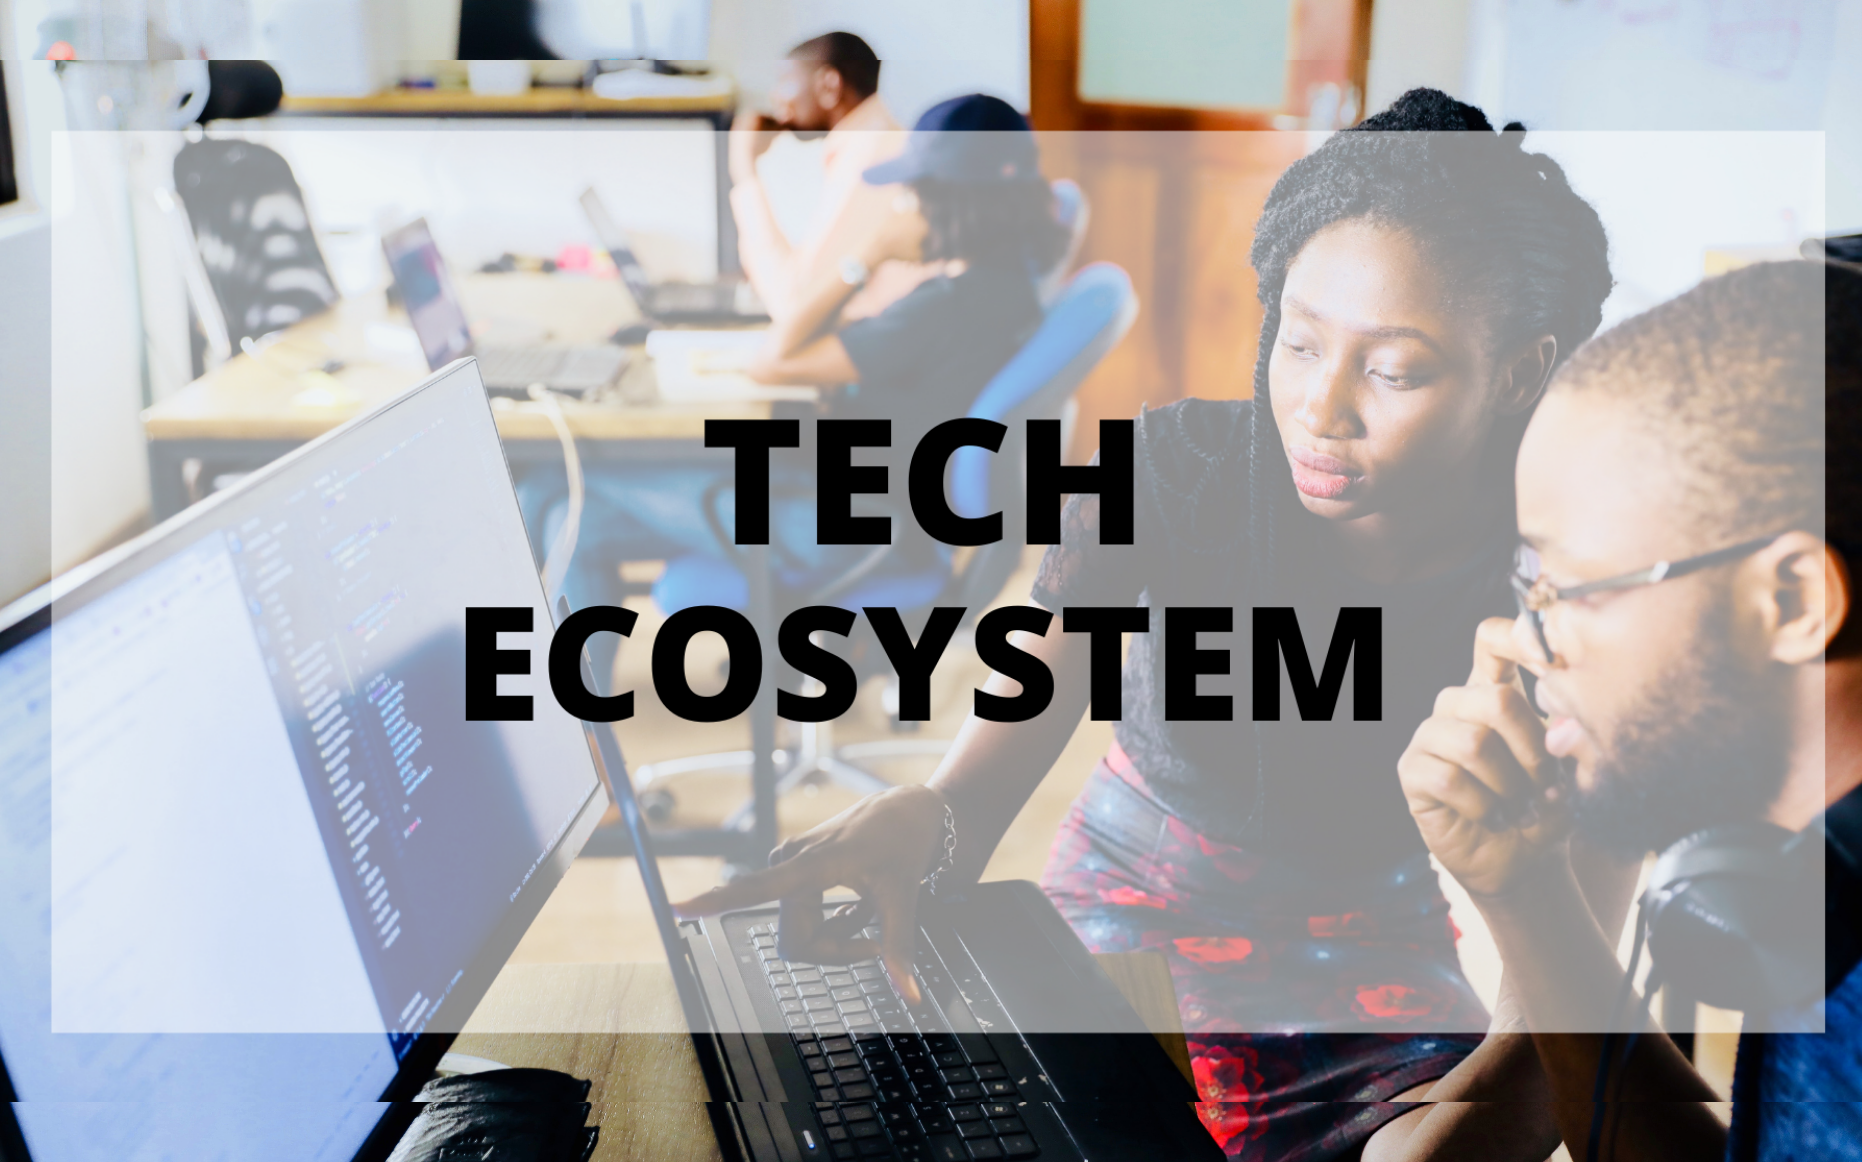 tech ecosystem, fintech ecosystem, ad tech ecosystem, talent tech labs ecosystem, tech ecosystem definition